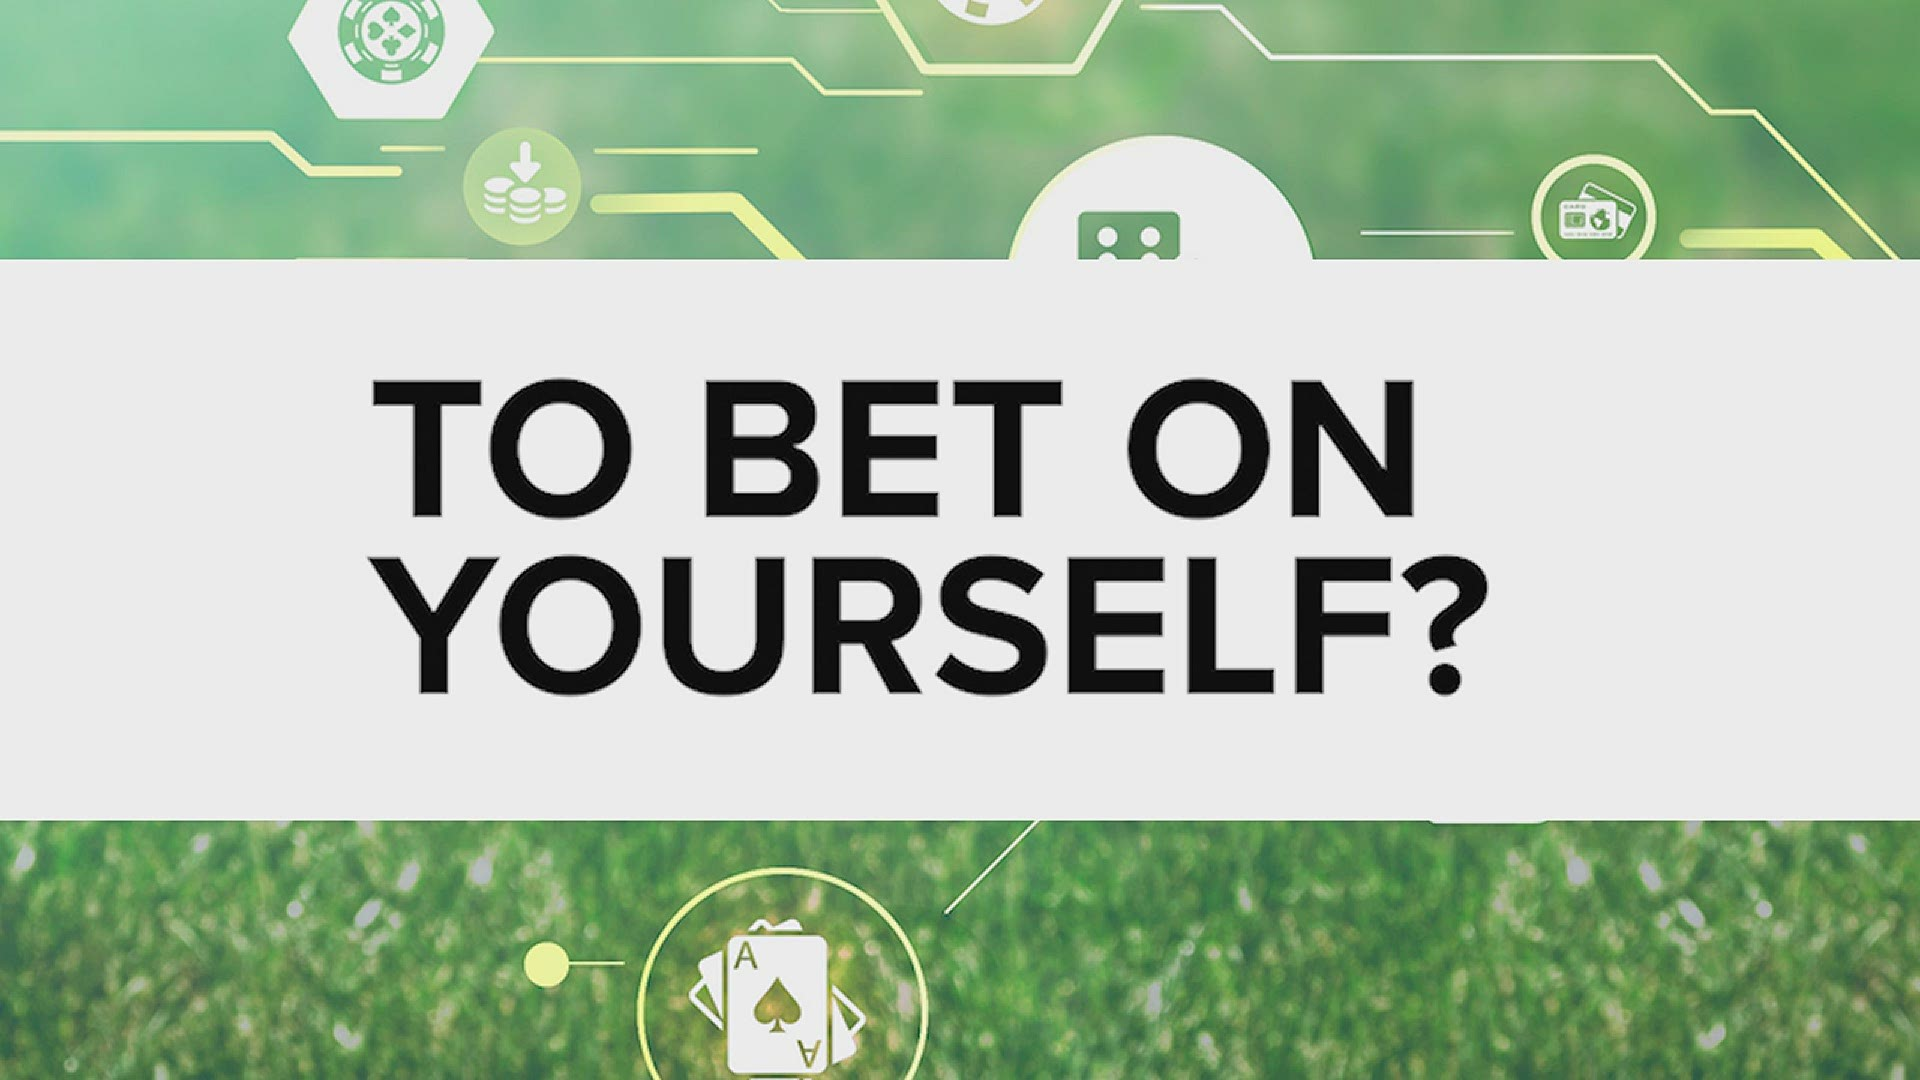 can professional athletes bet on themselves